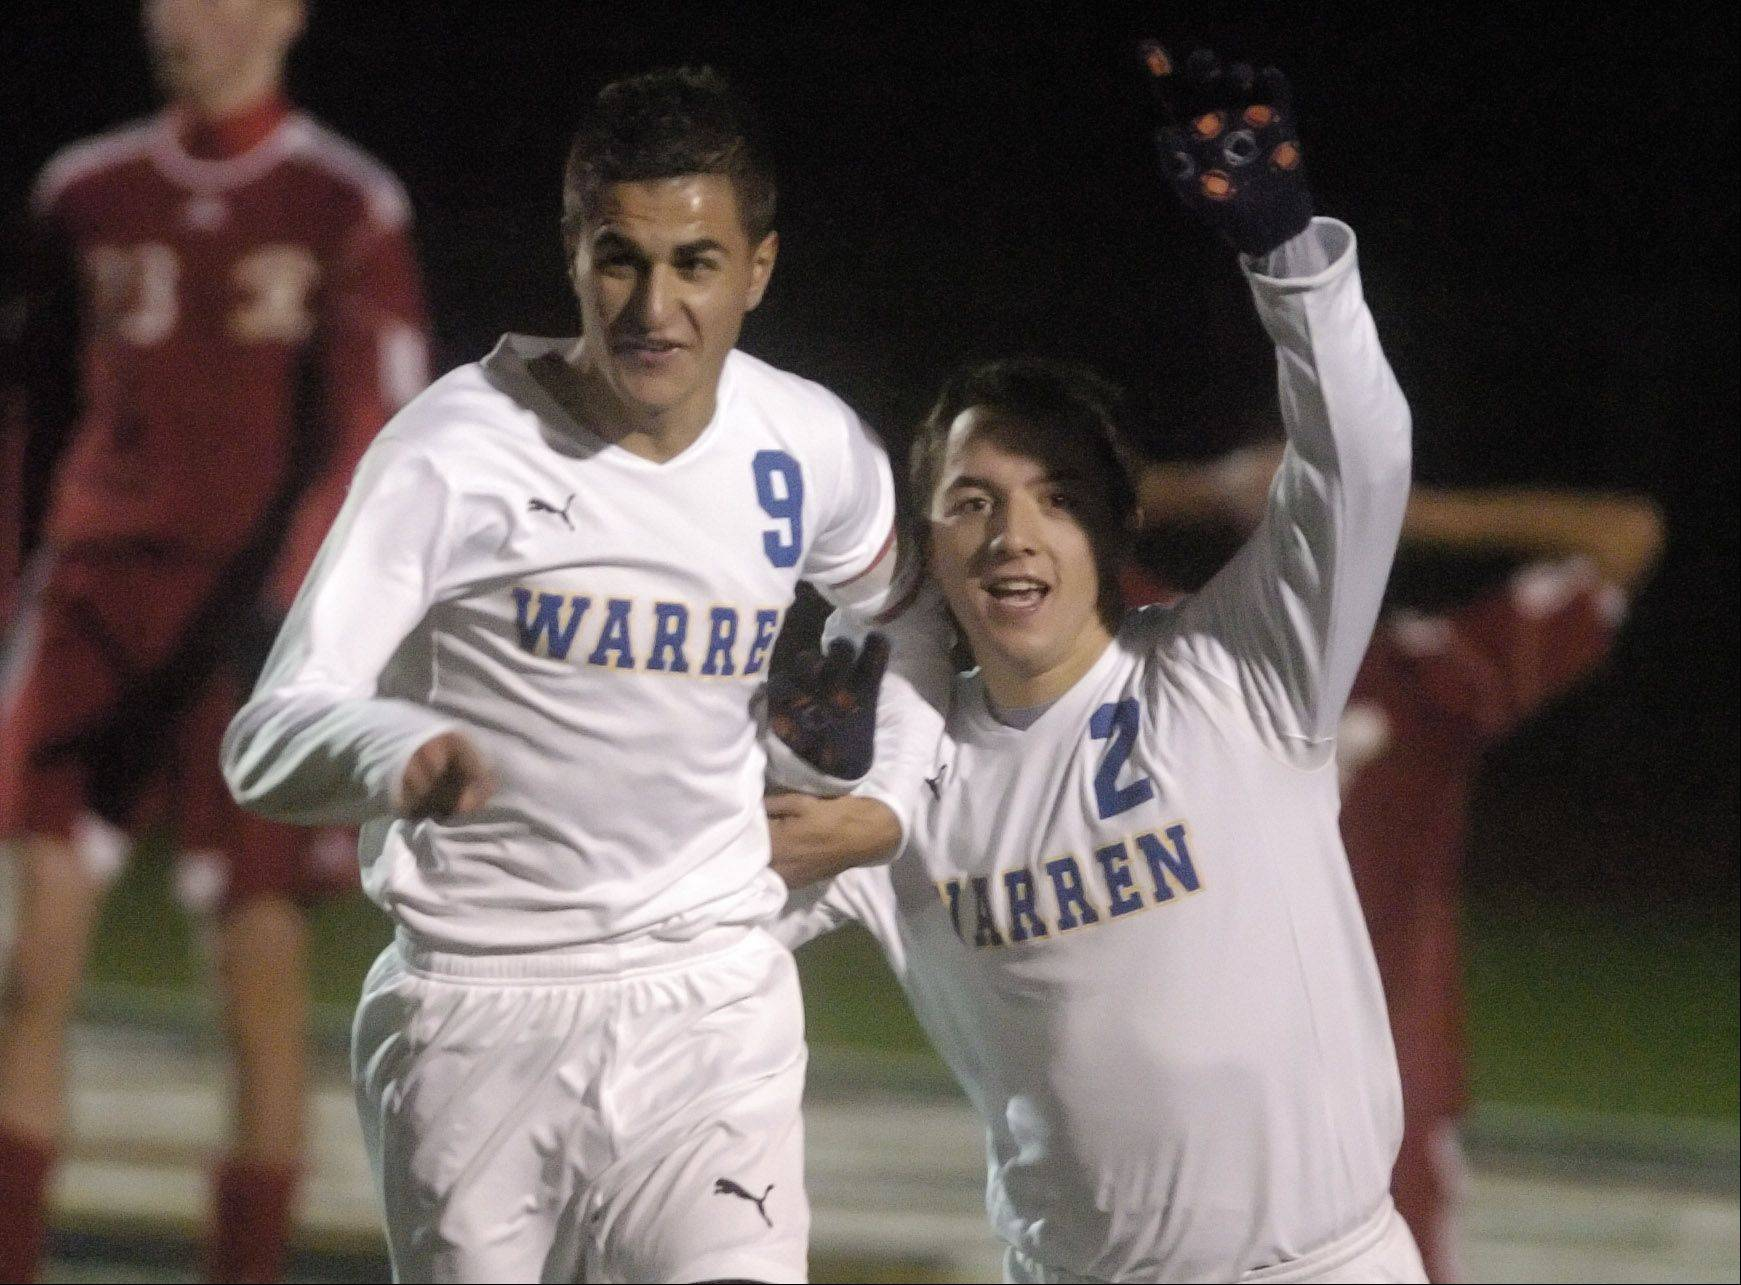 Daniel Szczepanek and Tony Severini of Warren celebrate after a goal during the Warren vs. Naperville Central Class 3A State Final in Frankfort Saturday.